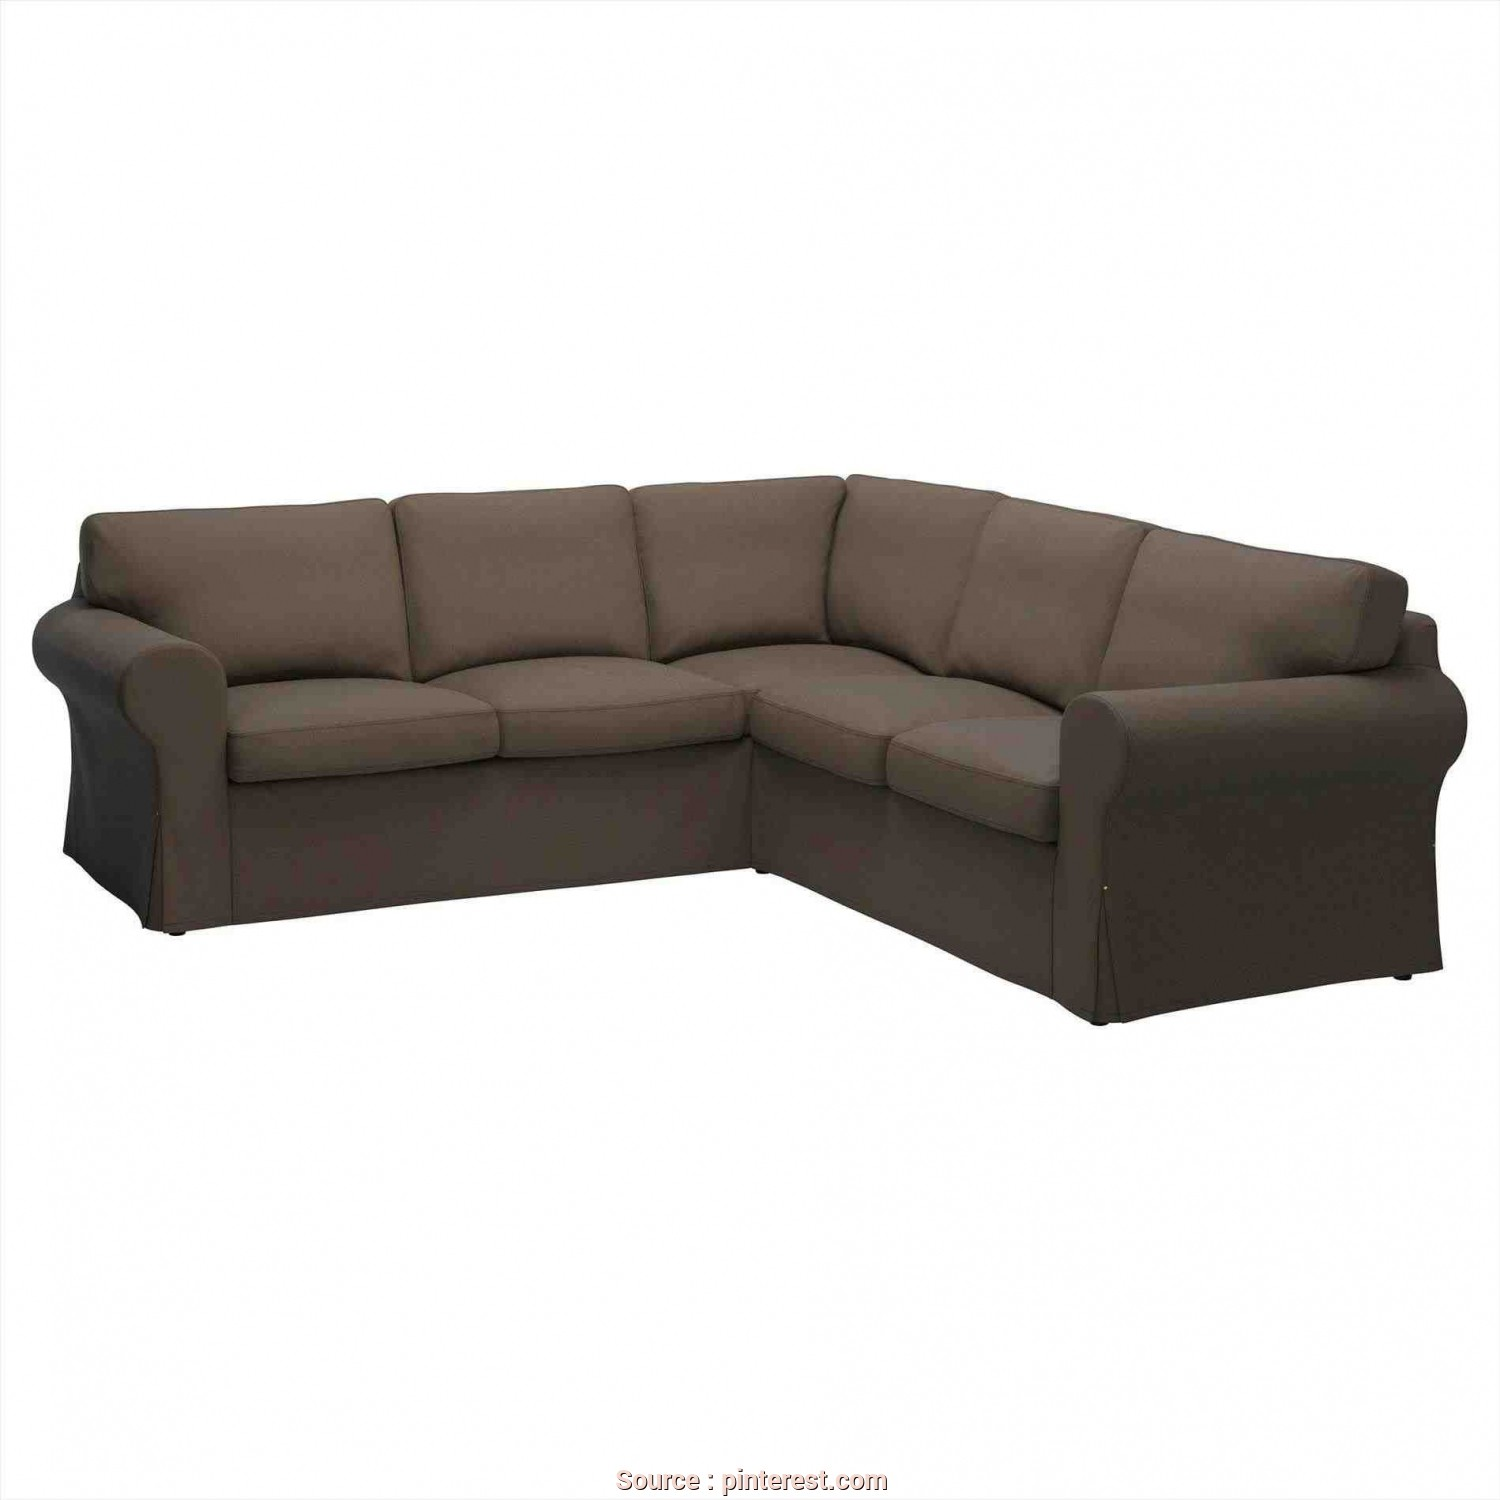 Divano Chesterfield Kijiji, Favoloso Cheap Sofa, Philippines, Sofa, For Philippines Home Design Furniture. Philippines Family Living Room Furniture Display. Cheap Sofa Sleeper, Corner